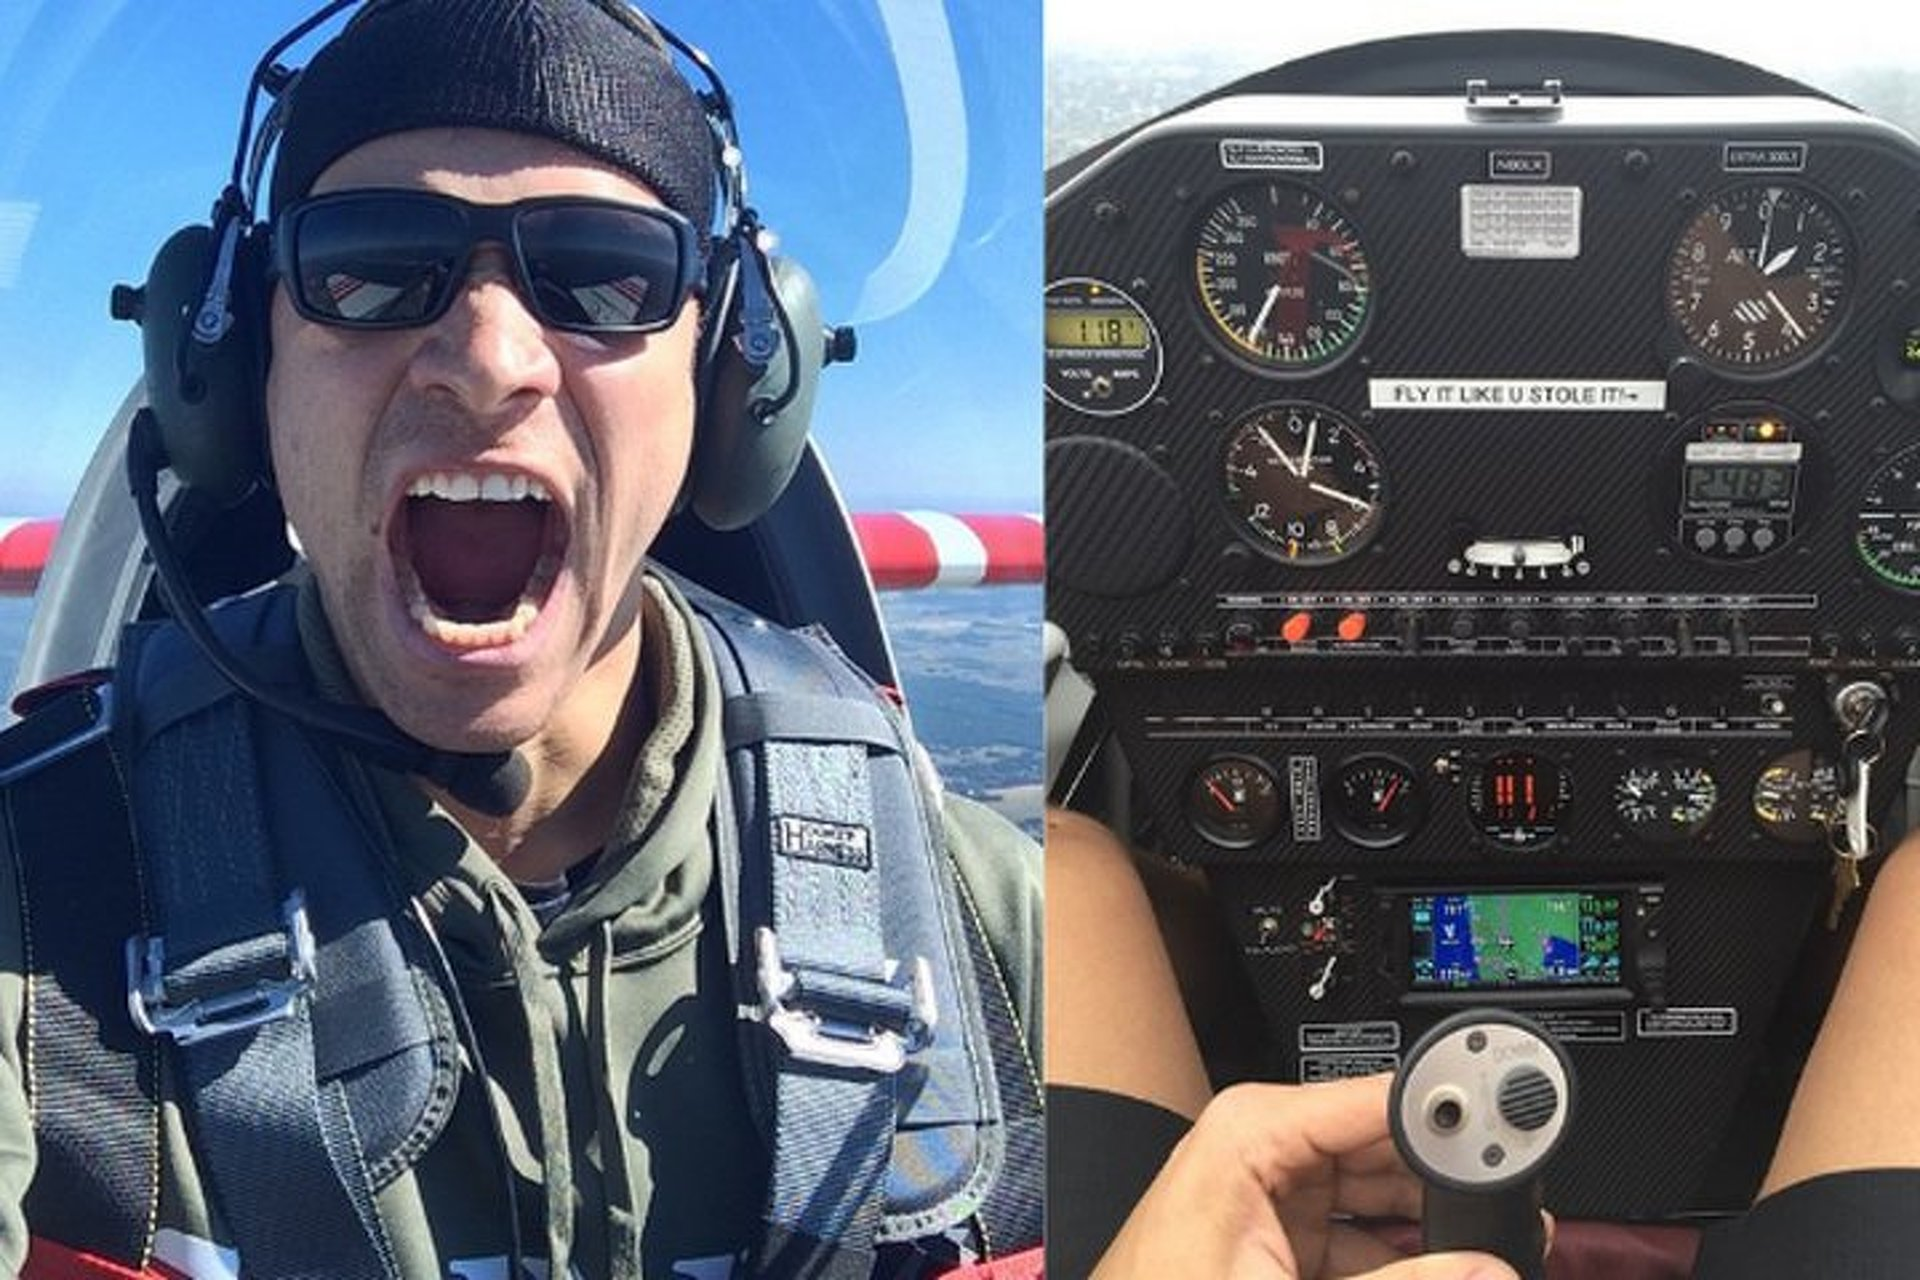 Seattle Seahawks' TE Jimmy Graham Moonlights as a Stunt Pilot